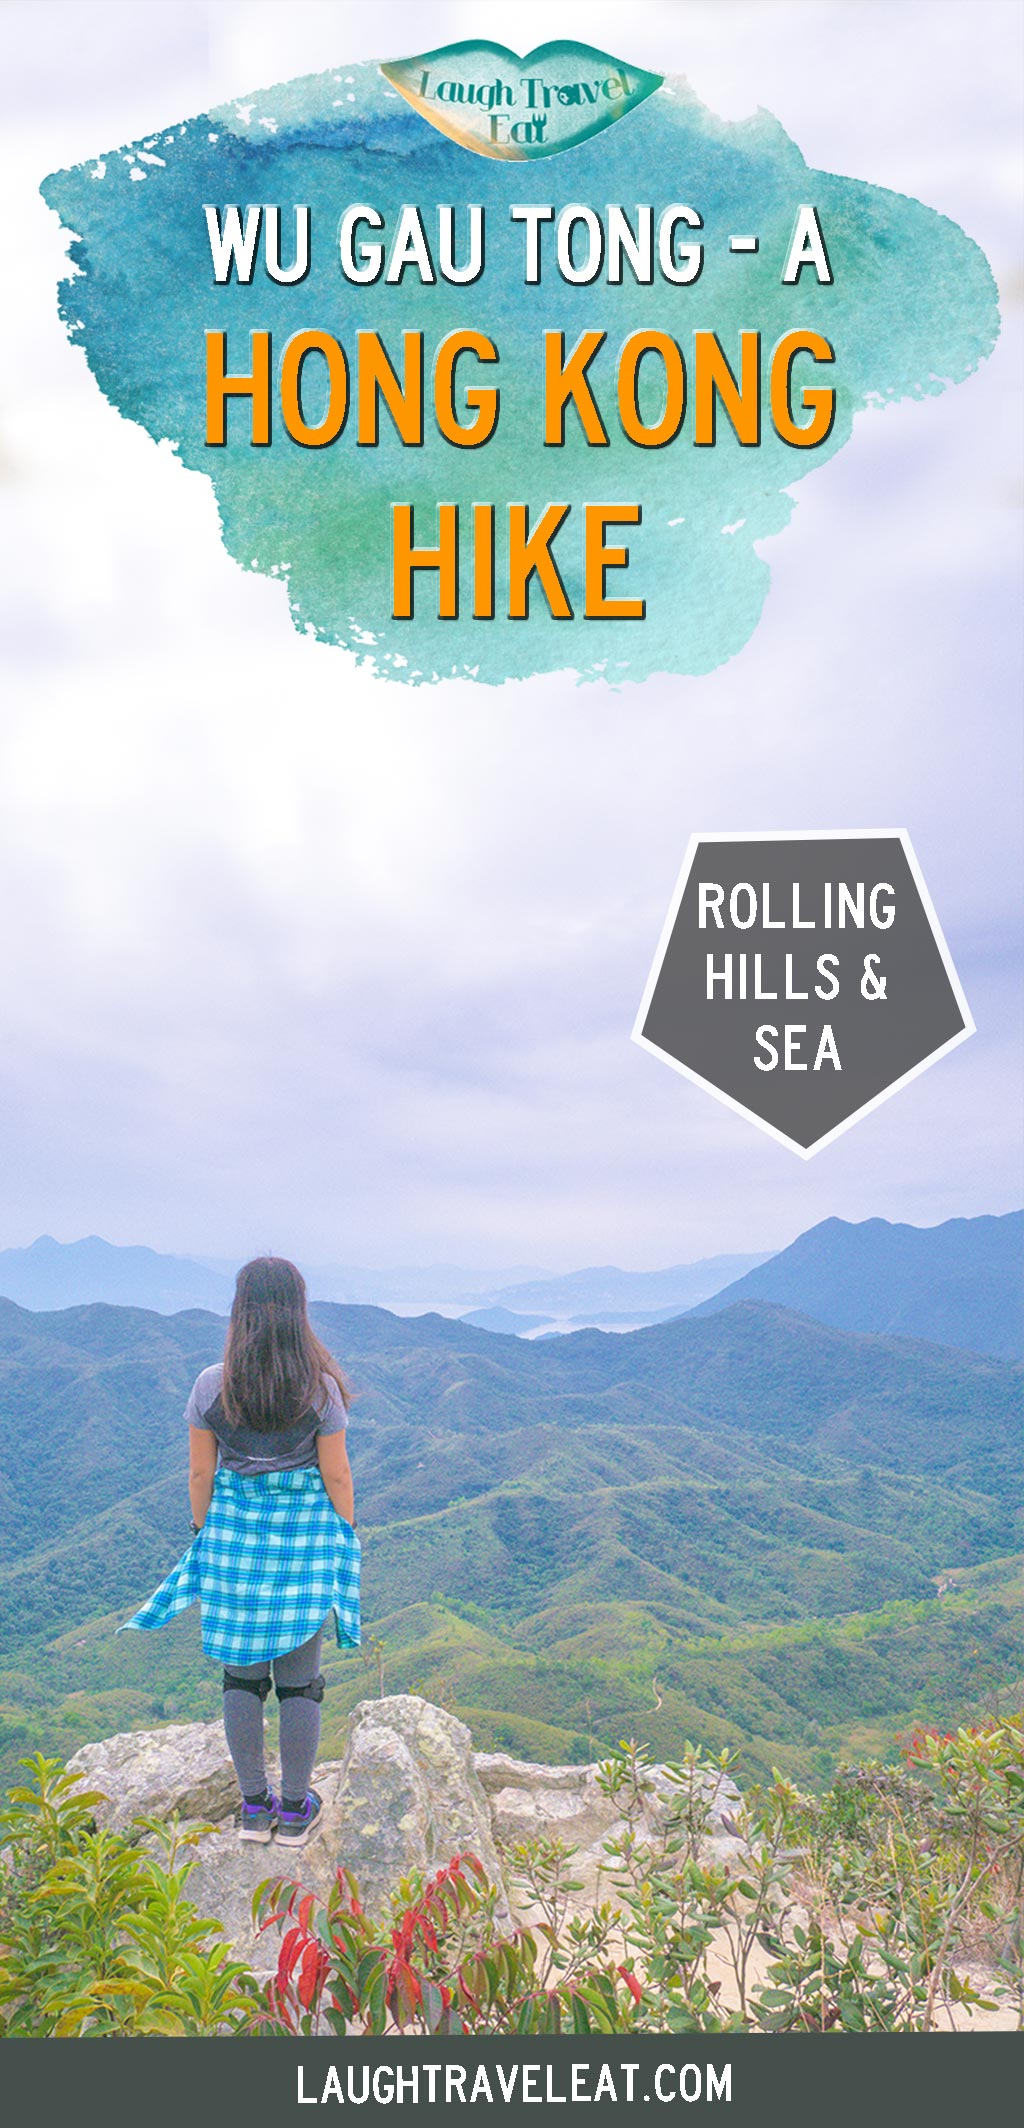 Wu Gau Tang is a beautiful area located in the Plover Bay Marine Park area in Tai Po. It is a popular hike for many and here's how: #hongkong #hike #hongkonghike